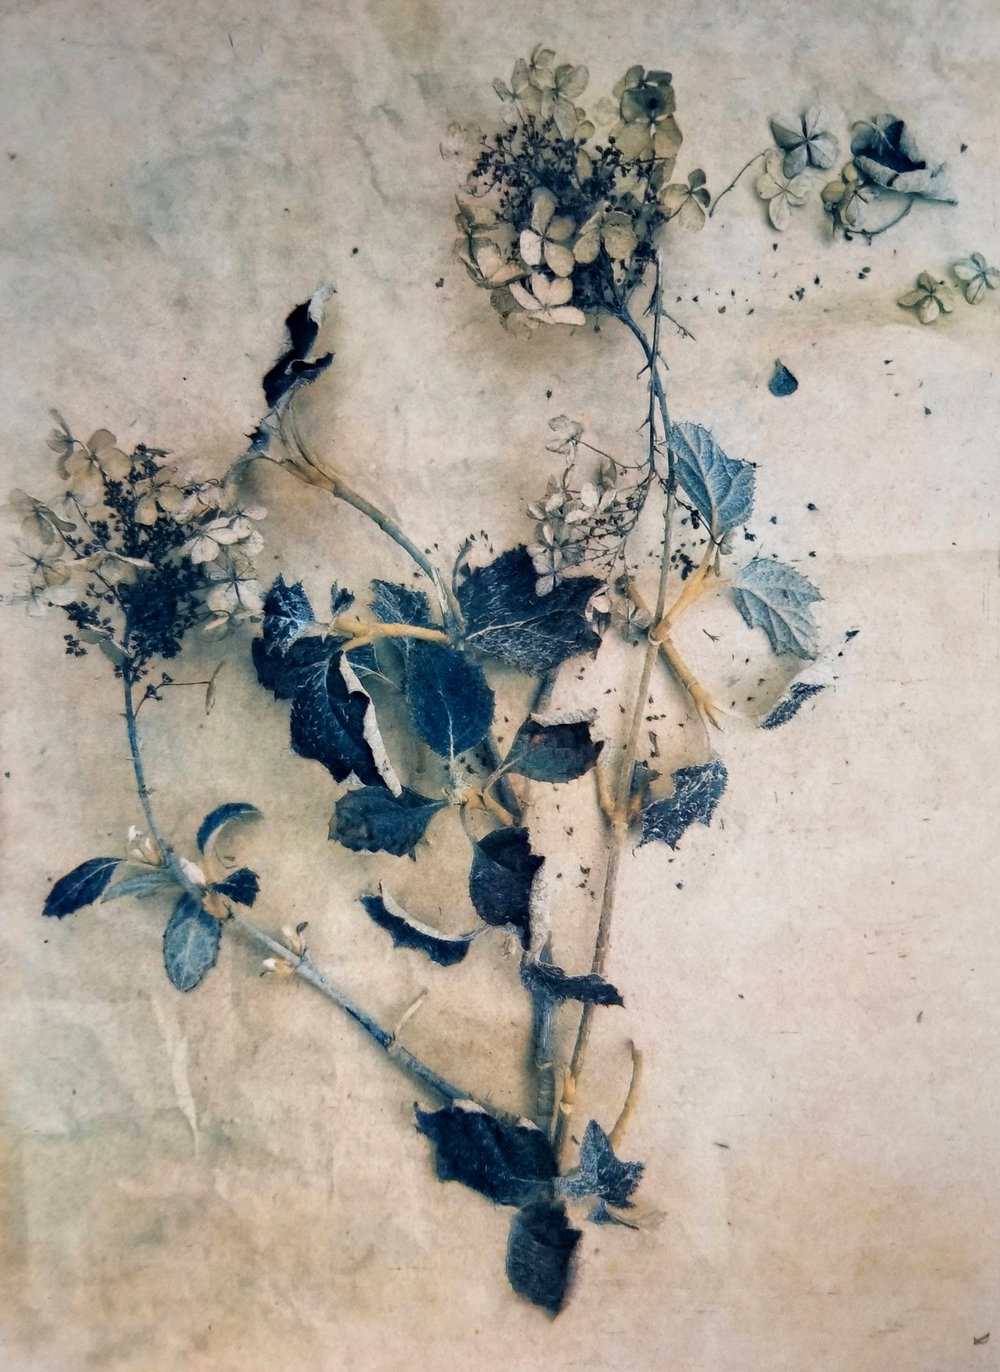 Backyard Hydrangea  2018 (Tricolor gum bichromate over cyanotype) ©DH Bloomfield 2018